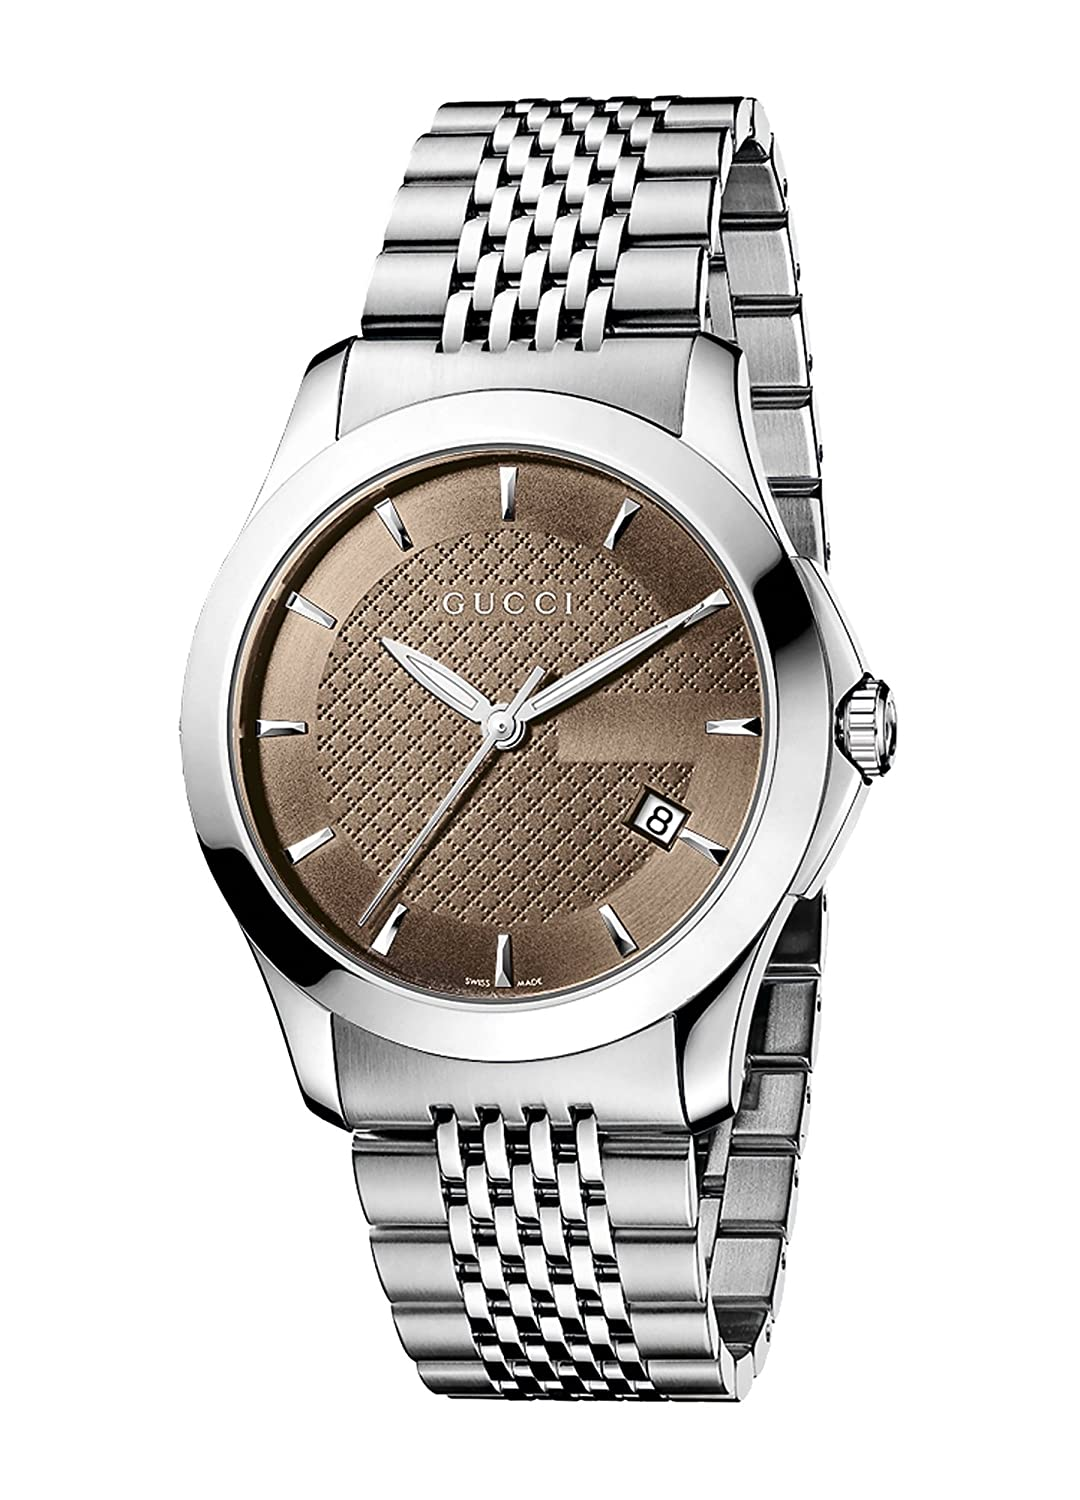 3f4e3f6a2c5 Amazon.com  Gucci Gucci Timeless Men s Watch(Model YA126406)  Gucci  Watches